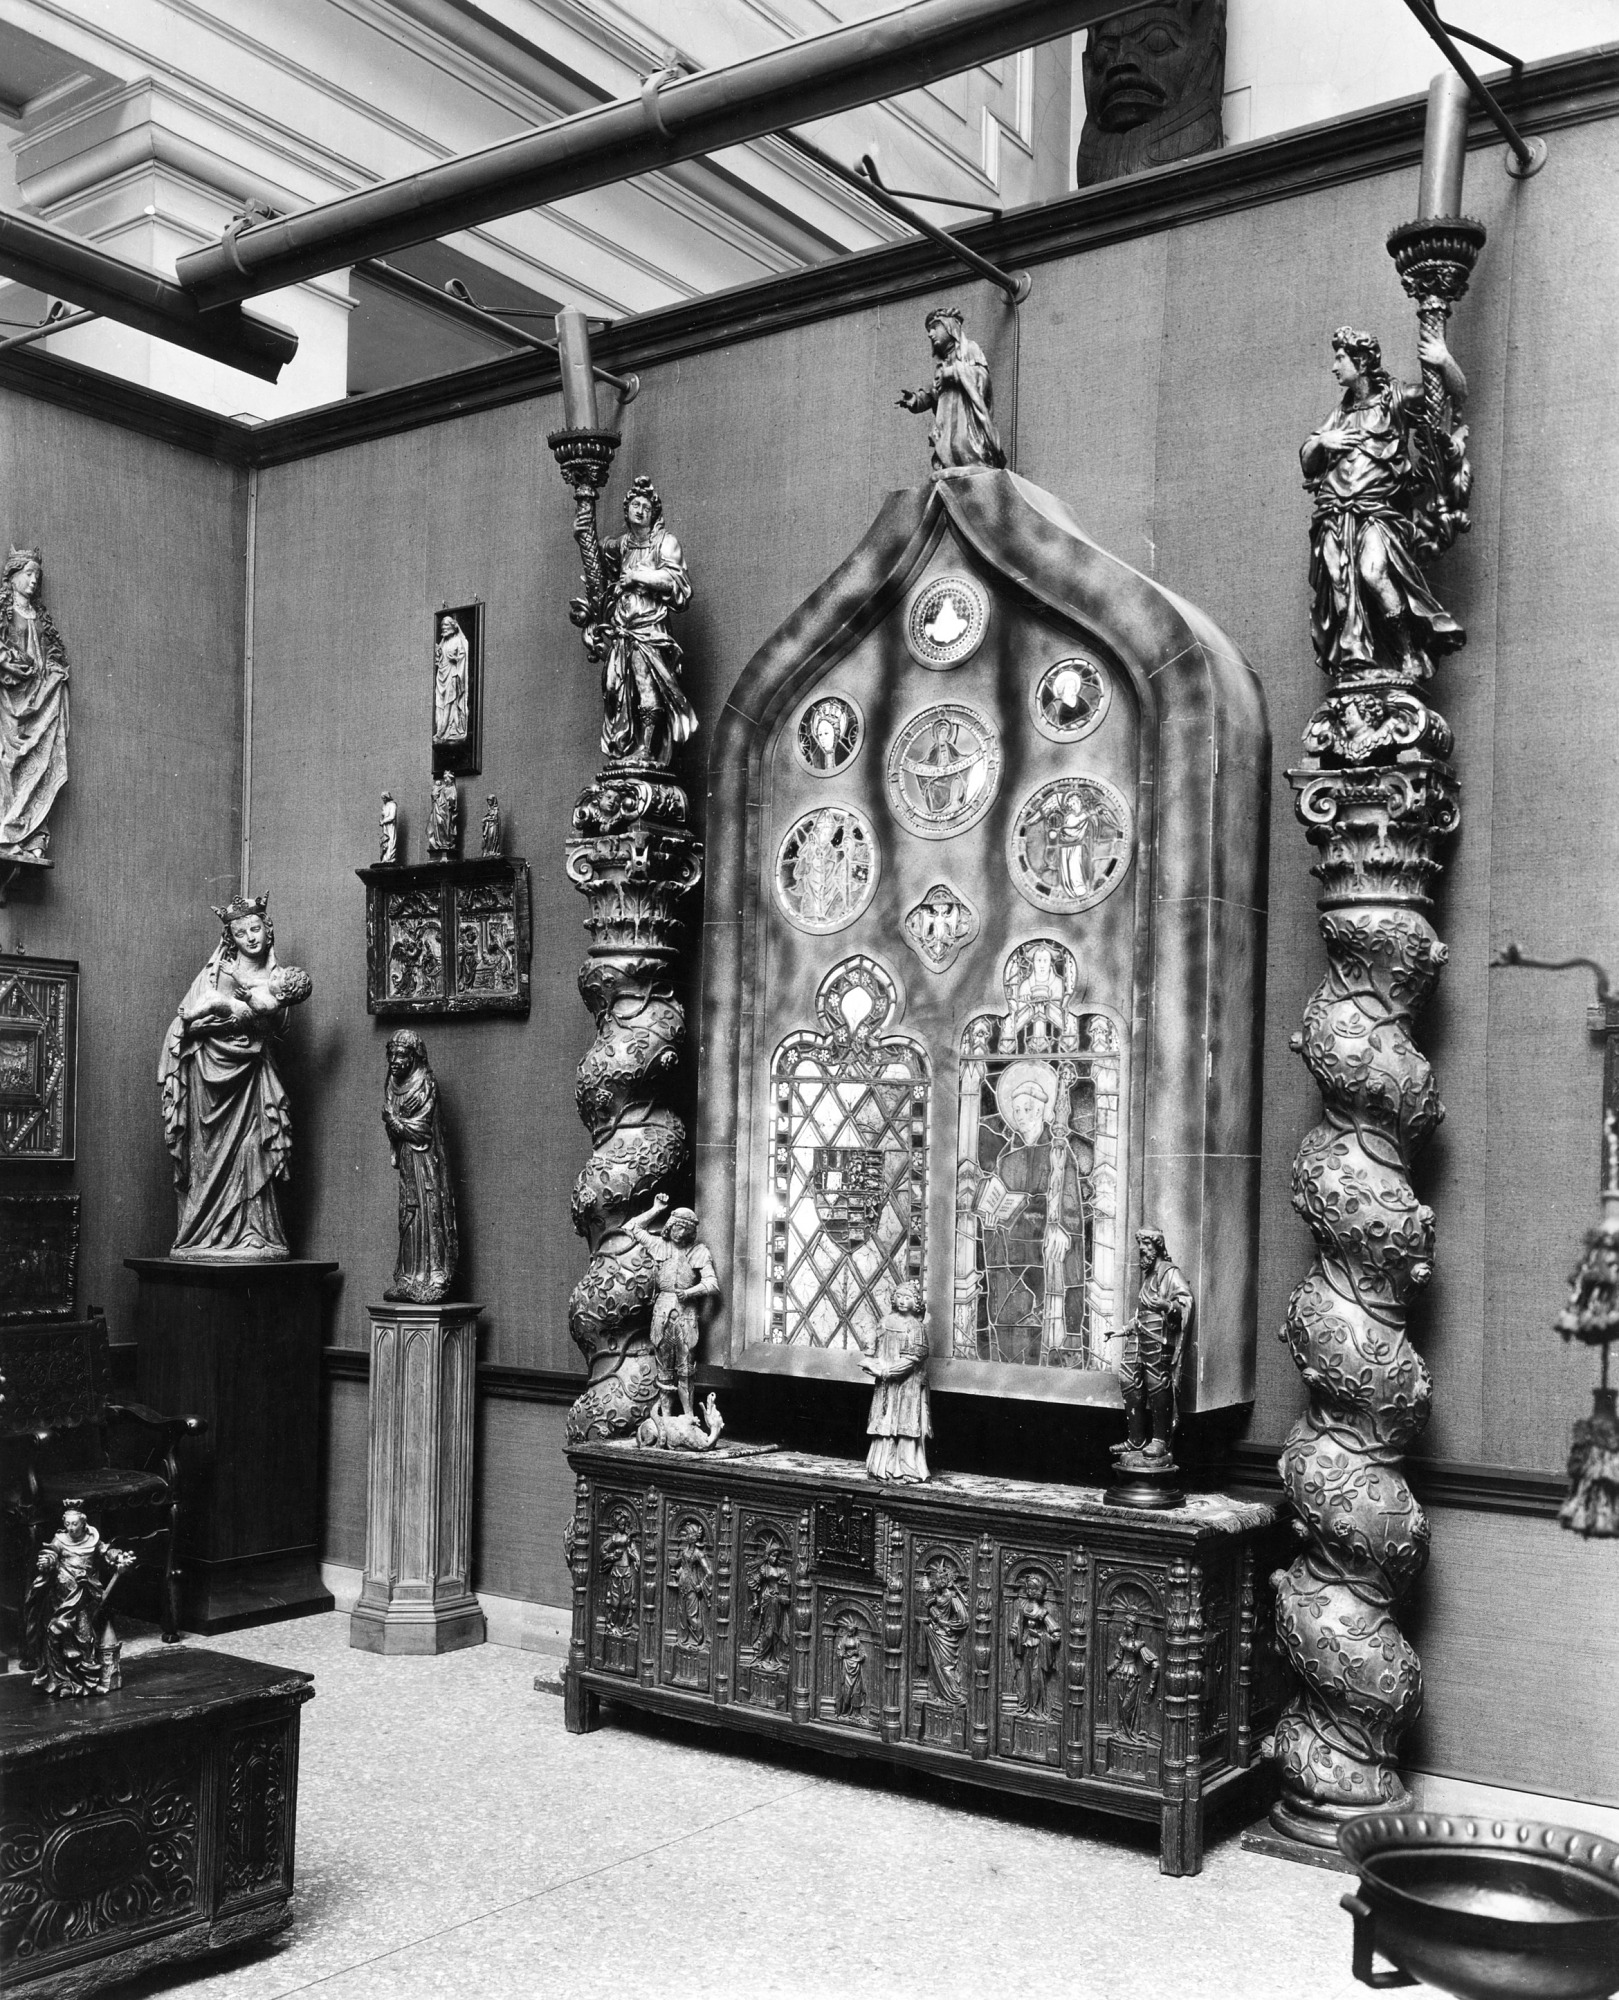 Gothic Room, Gellatly Collection, by Unknown, 1933, Smithsonian Archives - History Div, 2002-3226.